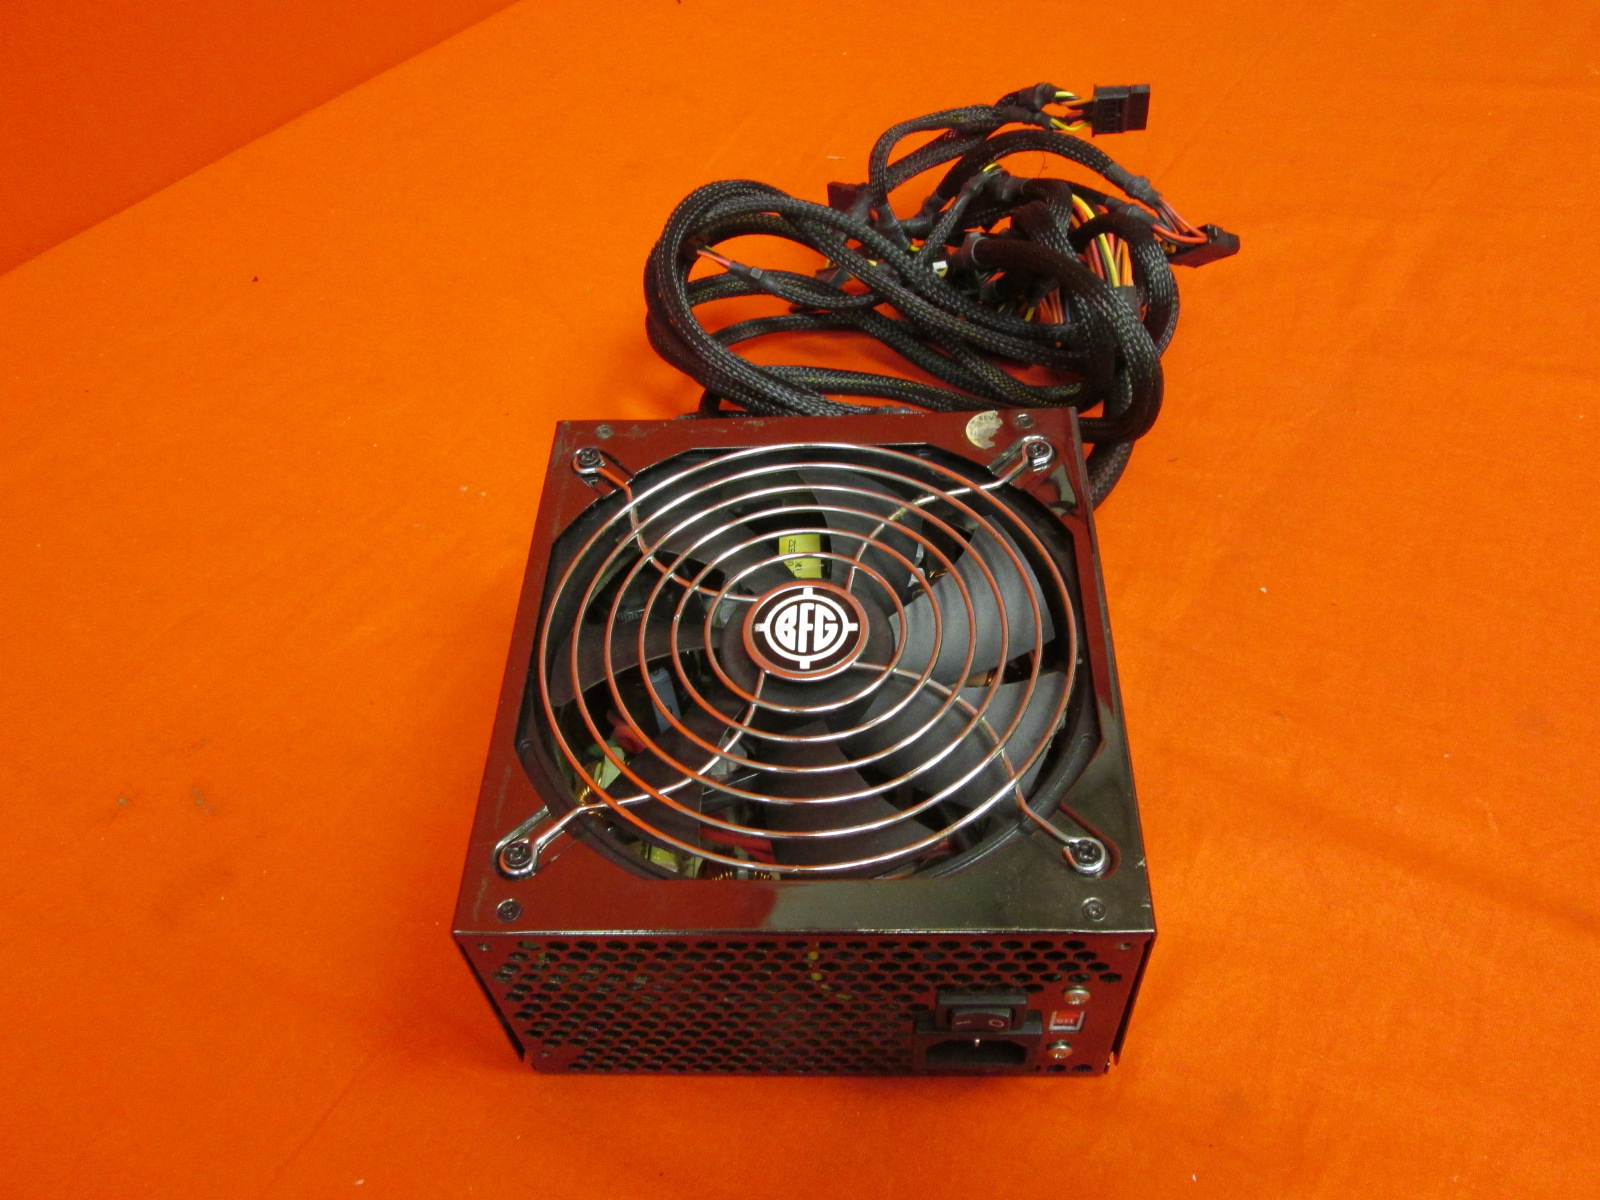 BFG Tech BFGR550WGSPSU 550-watt Power Supply